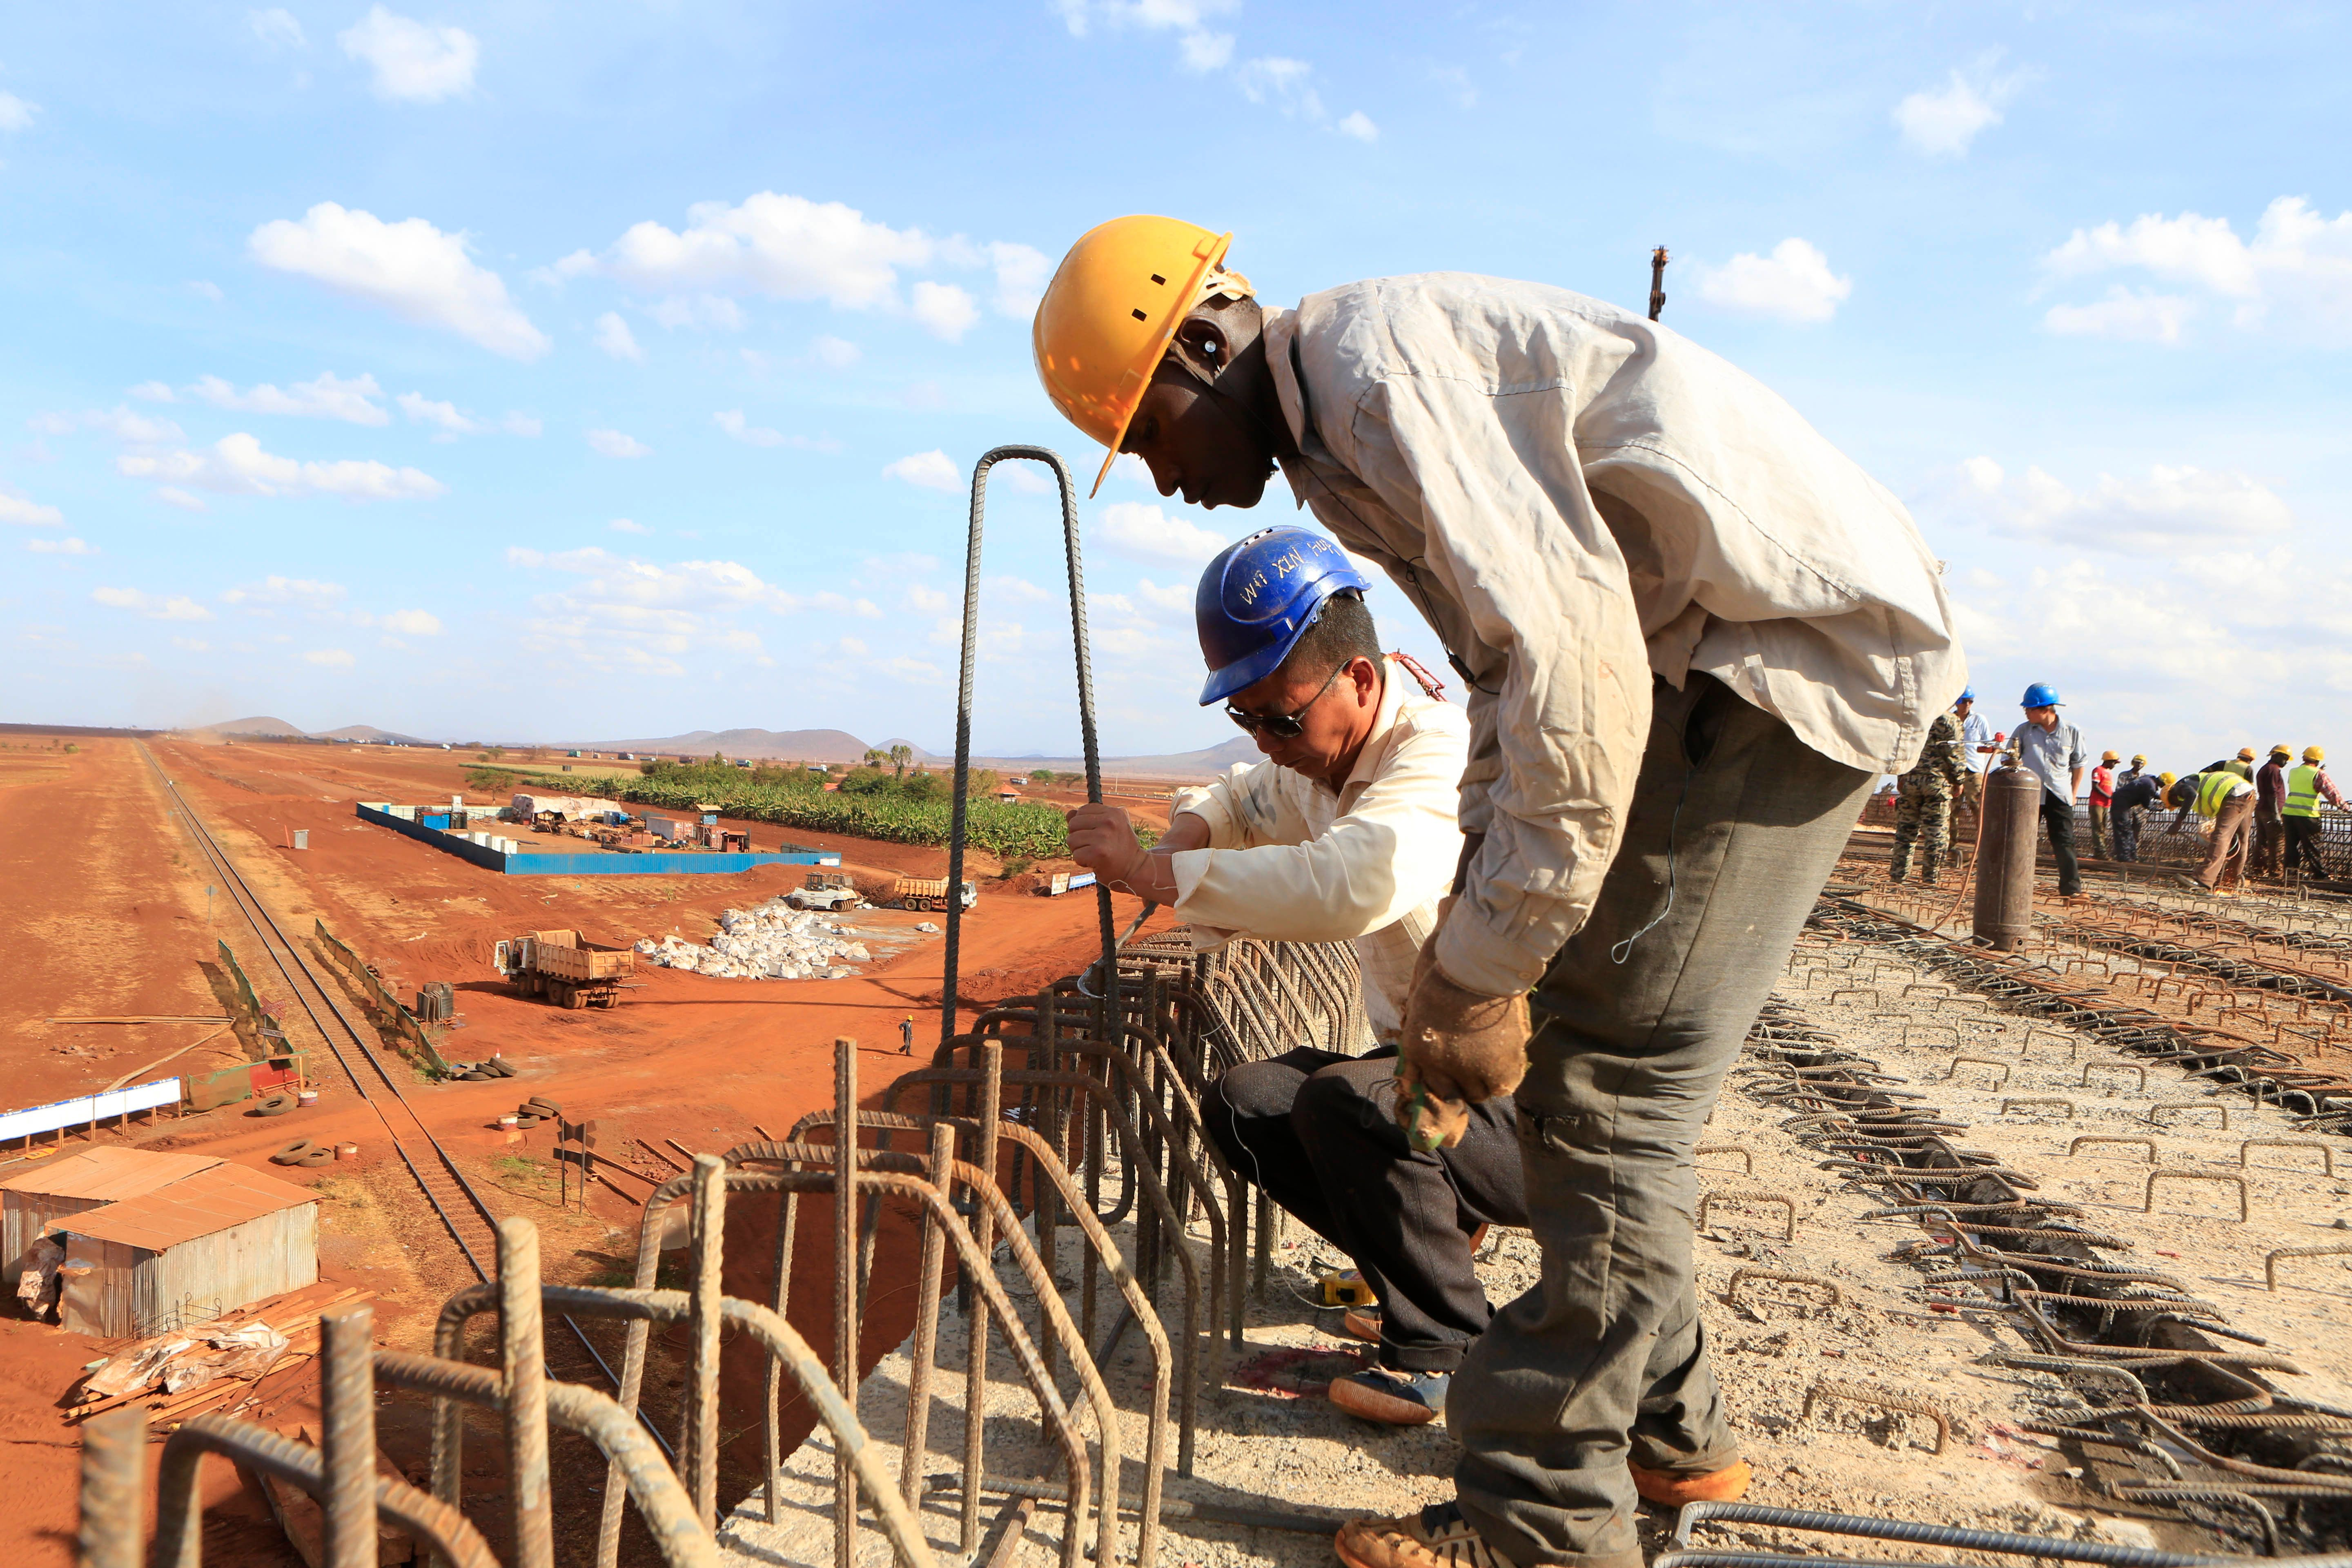 A Chinese engineer and a local construction worker work on a section of the Mombasa-Nairobi standard gauge railway (SGR) in Emali, Kenya October 10, 2015. The China Road and Bridge Corporation (CRBC) tasked with the construction work at a cost of 3.8 billion U.S. dollars is due for completion in mid-2017. REUTERS/Noor Khamis